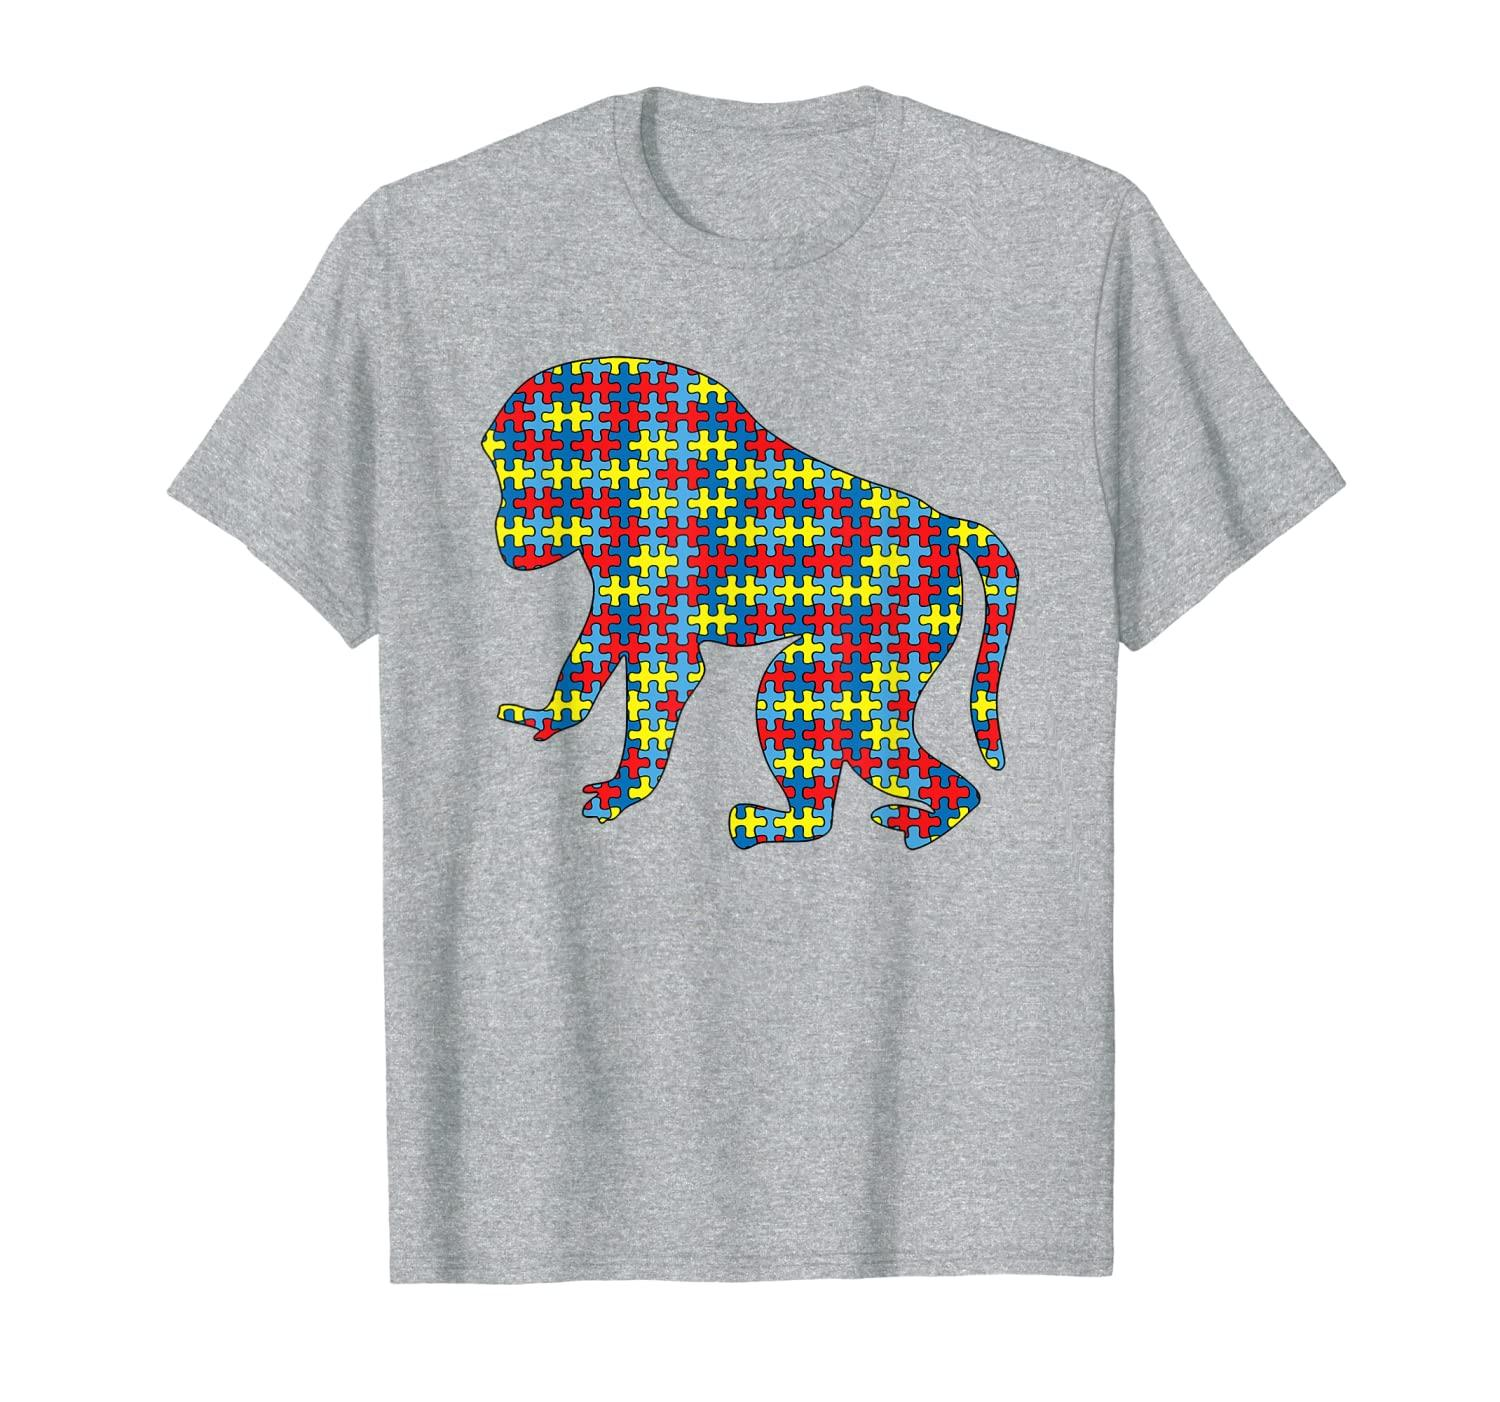 Ape Autism Awareness Kids Monkeys Puzzle Day Mom Gift T-Shirt